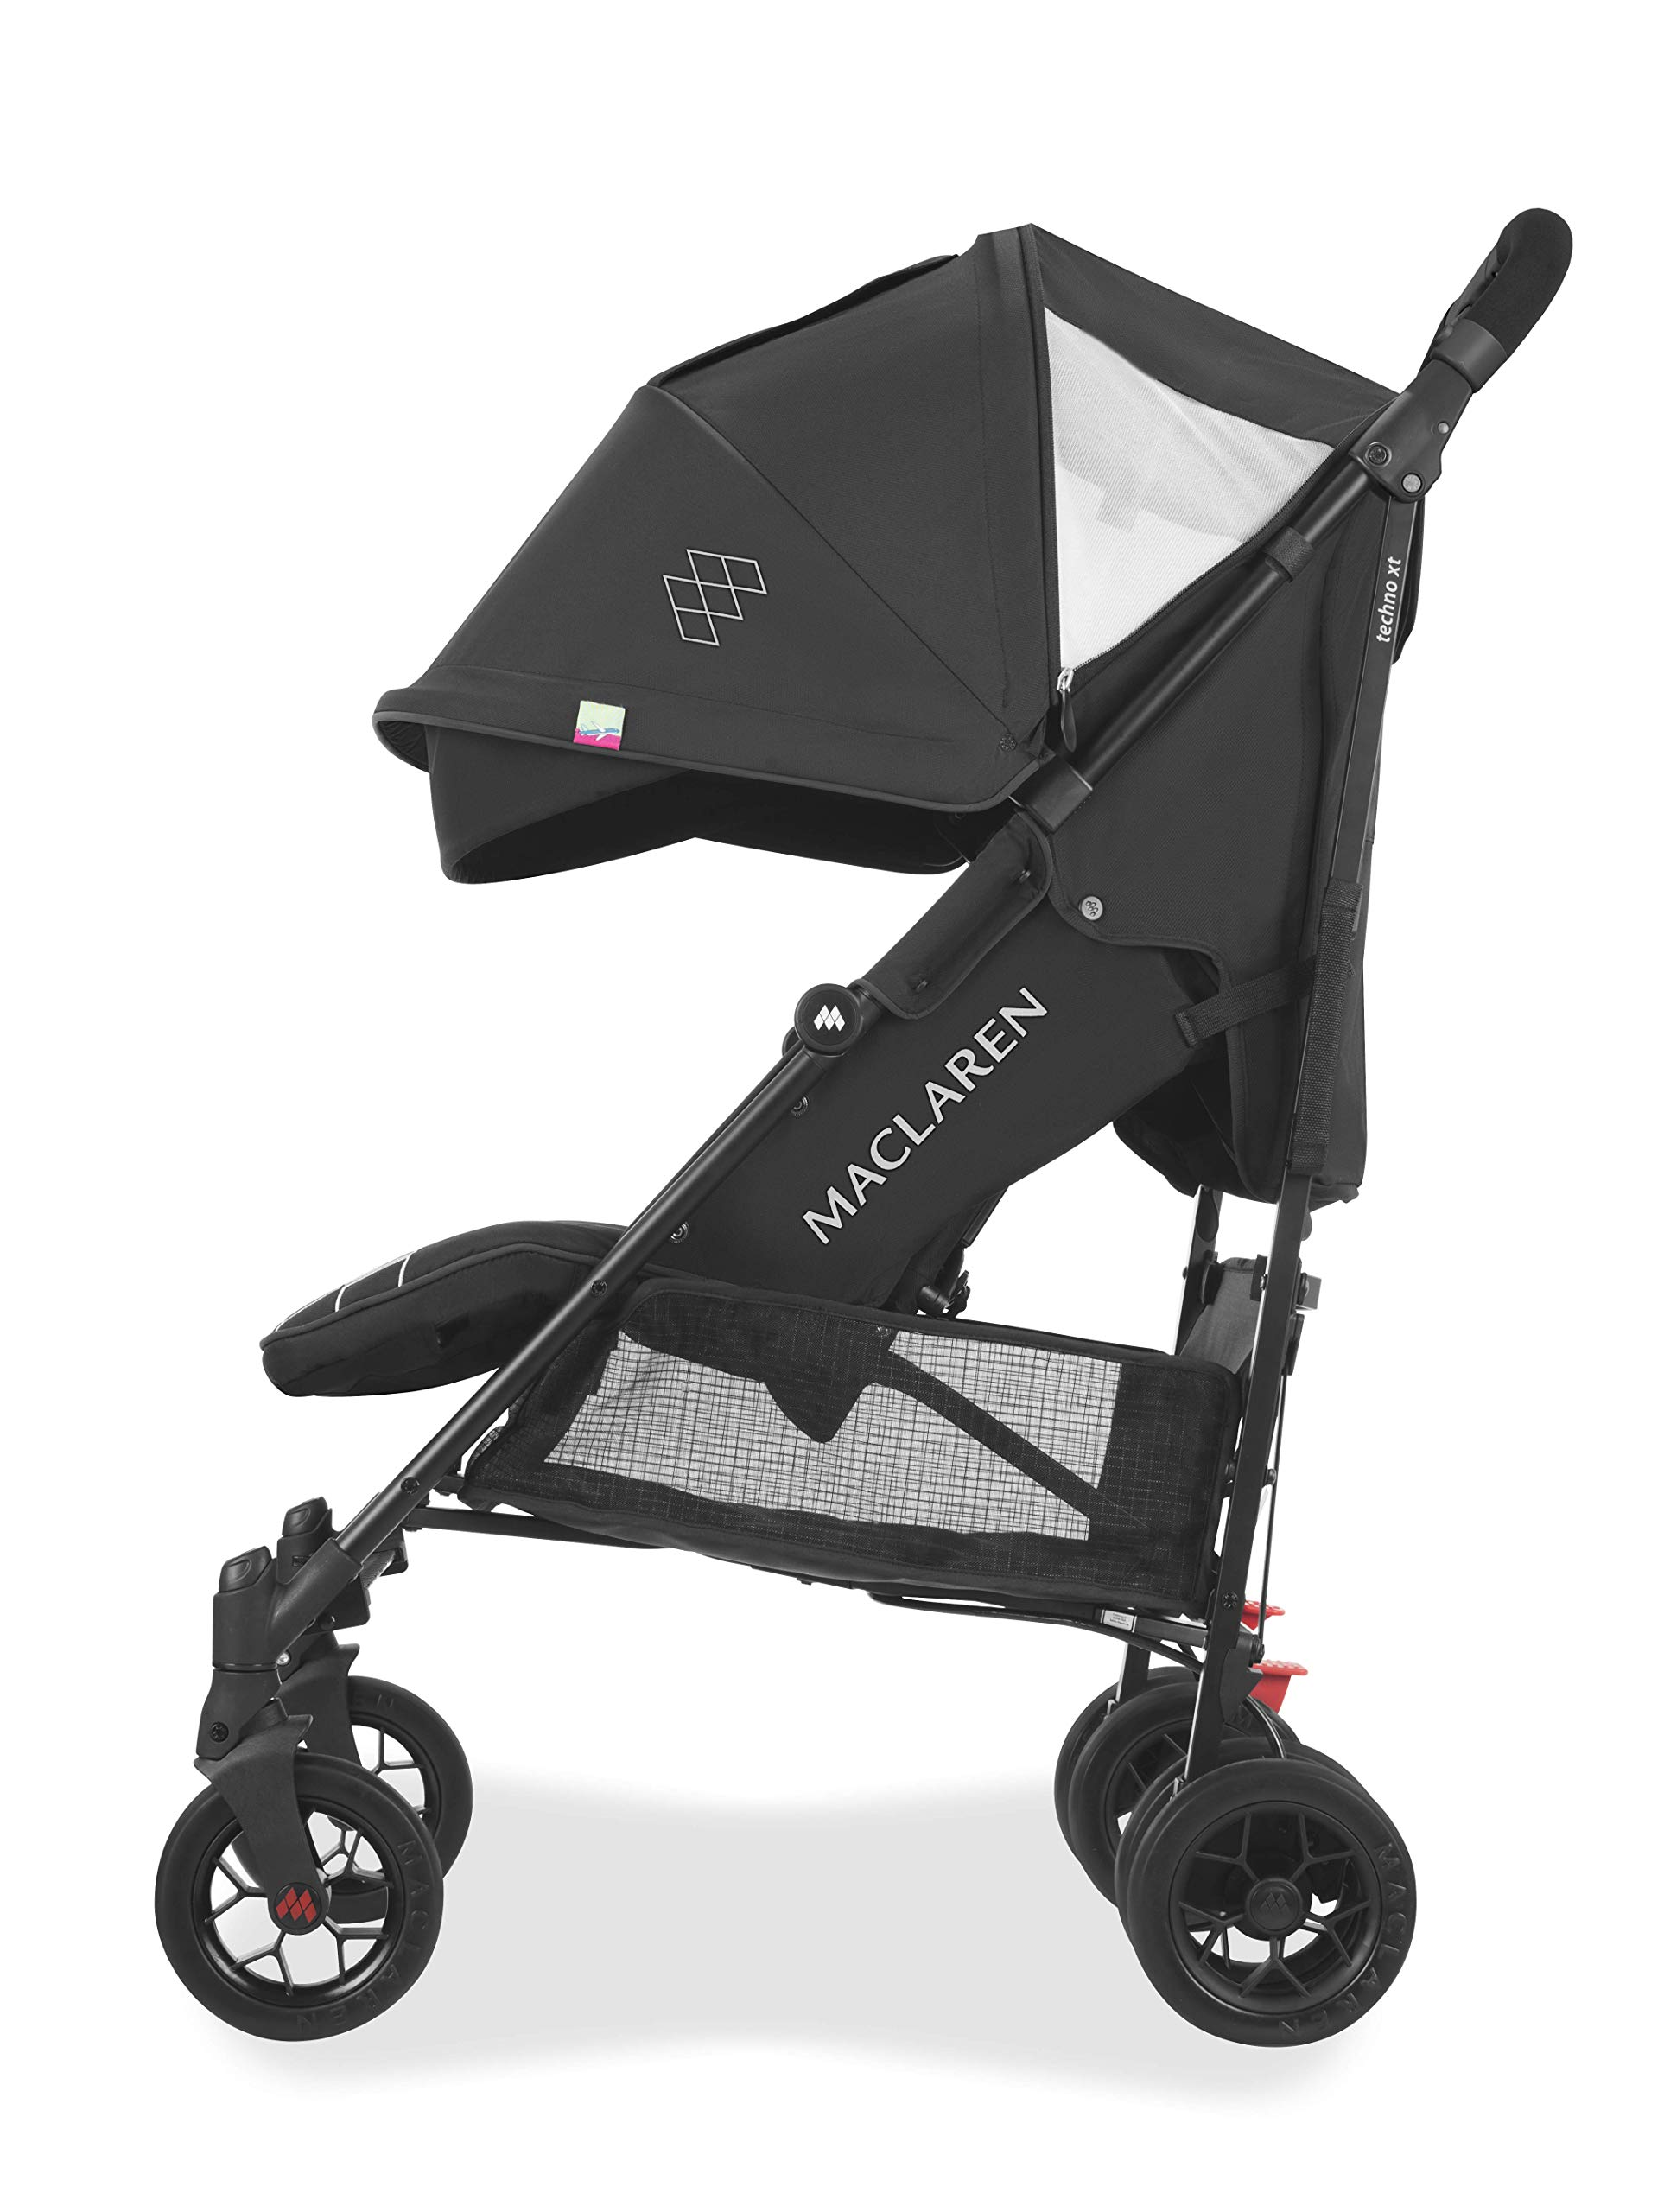 Maclaren Techno arc Stroller - lightweight, compact,Black/Black Maclaren The techno arc's basic weight is 7.1kg; ideal for newborns and children up to 25kg. The folded dimensions are 113cm L x 35cm w x 35cm H. The stroller is assembled The techno arc's padded seat reclines into 4 positions and converts into a new-born safety system. Coupled with ultra light flat-free eva tires and all wheel suspension The techno arc includes a wind-resistant rain cover and headhugger & shoulder pads. Waterproof/ upf 50+ hood to protect from the elements and machine washable seats to keep tidy 3